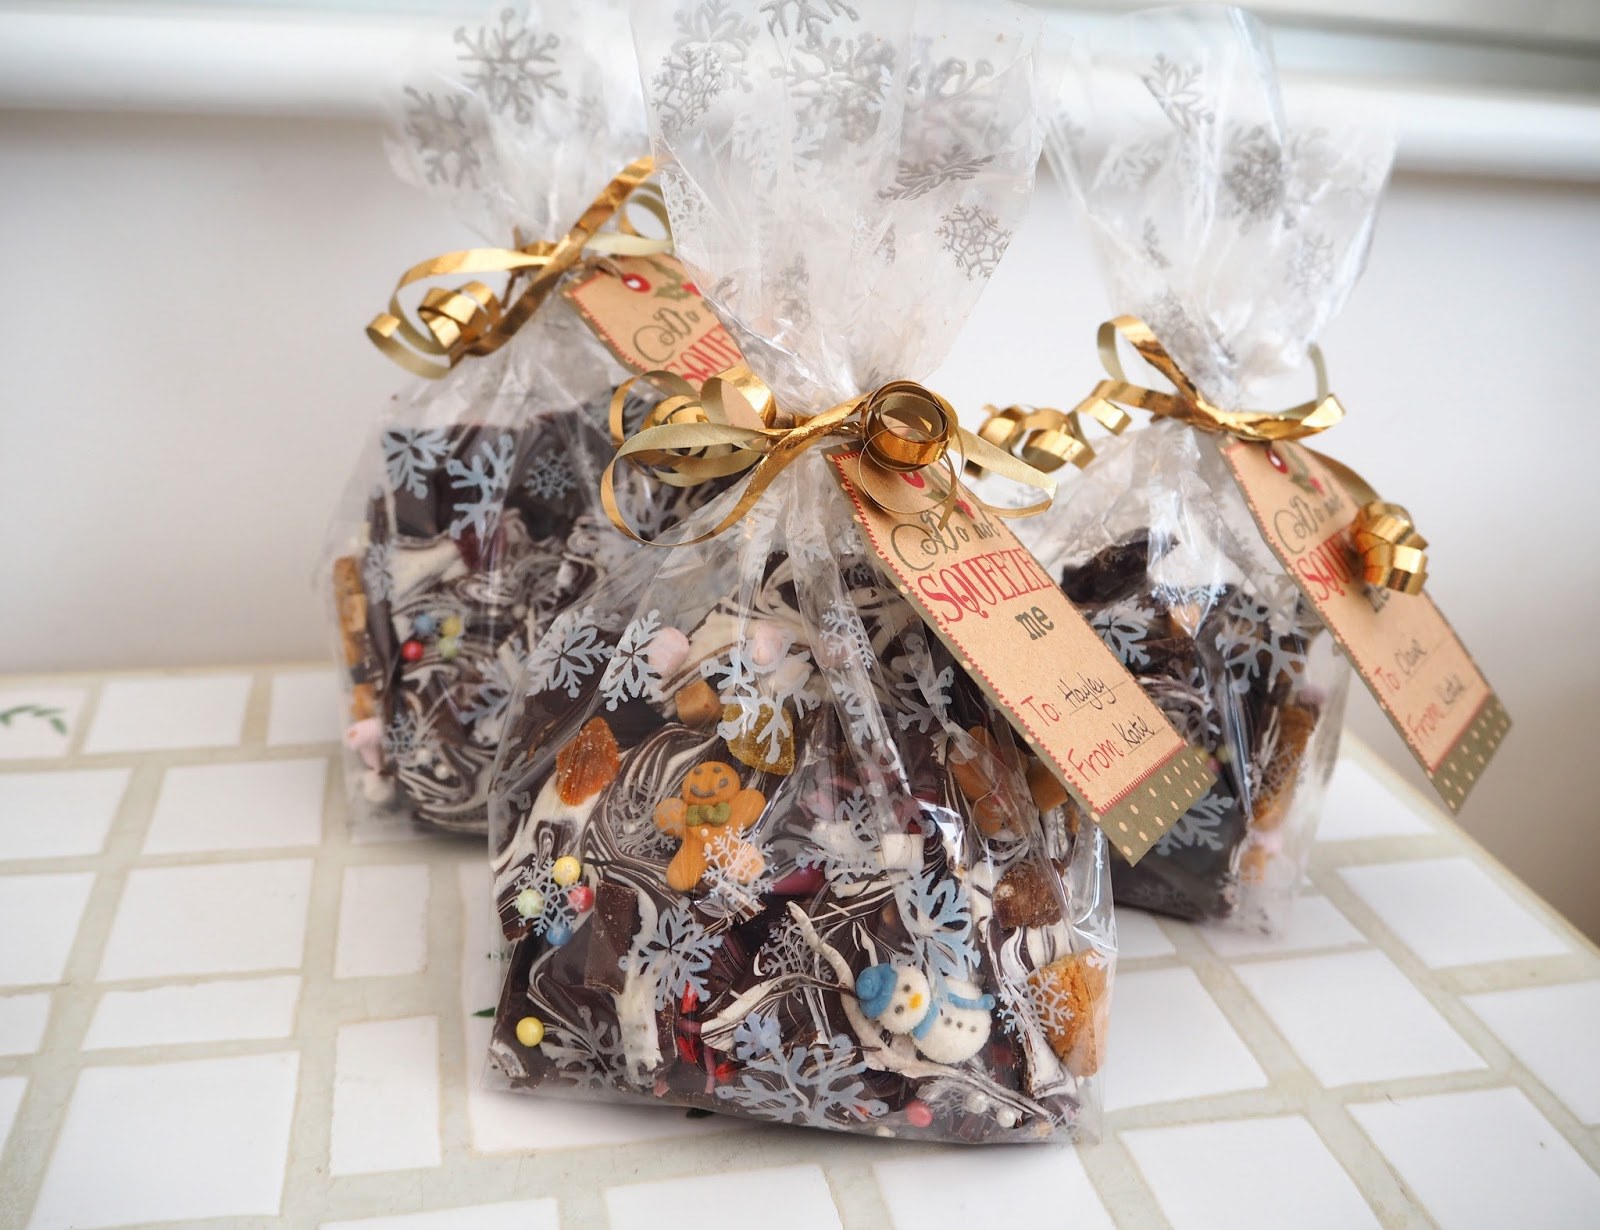 Homemade Christmas Gifts | How To Make: Chocolate Bark